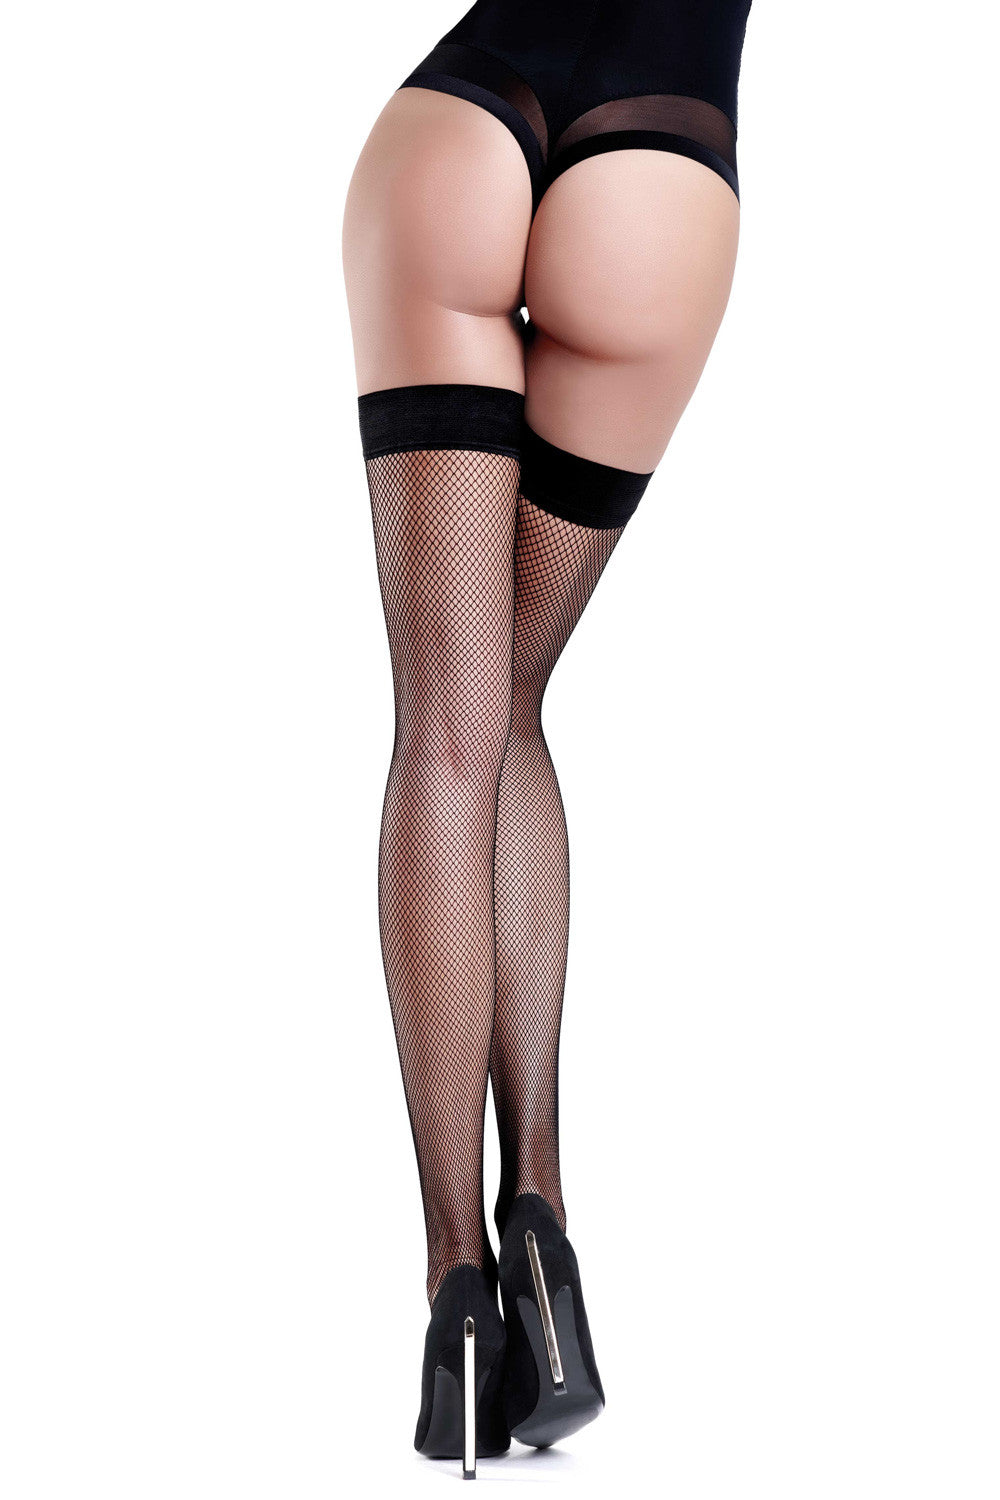 Oroblu Tricot Fishnet Hold Ups - Mayfair Stockings - Oroblu - Hold Ups - 4